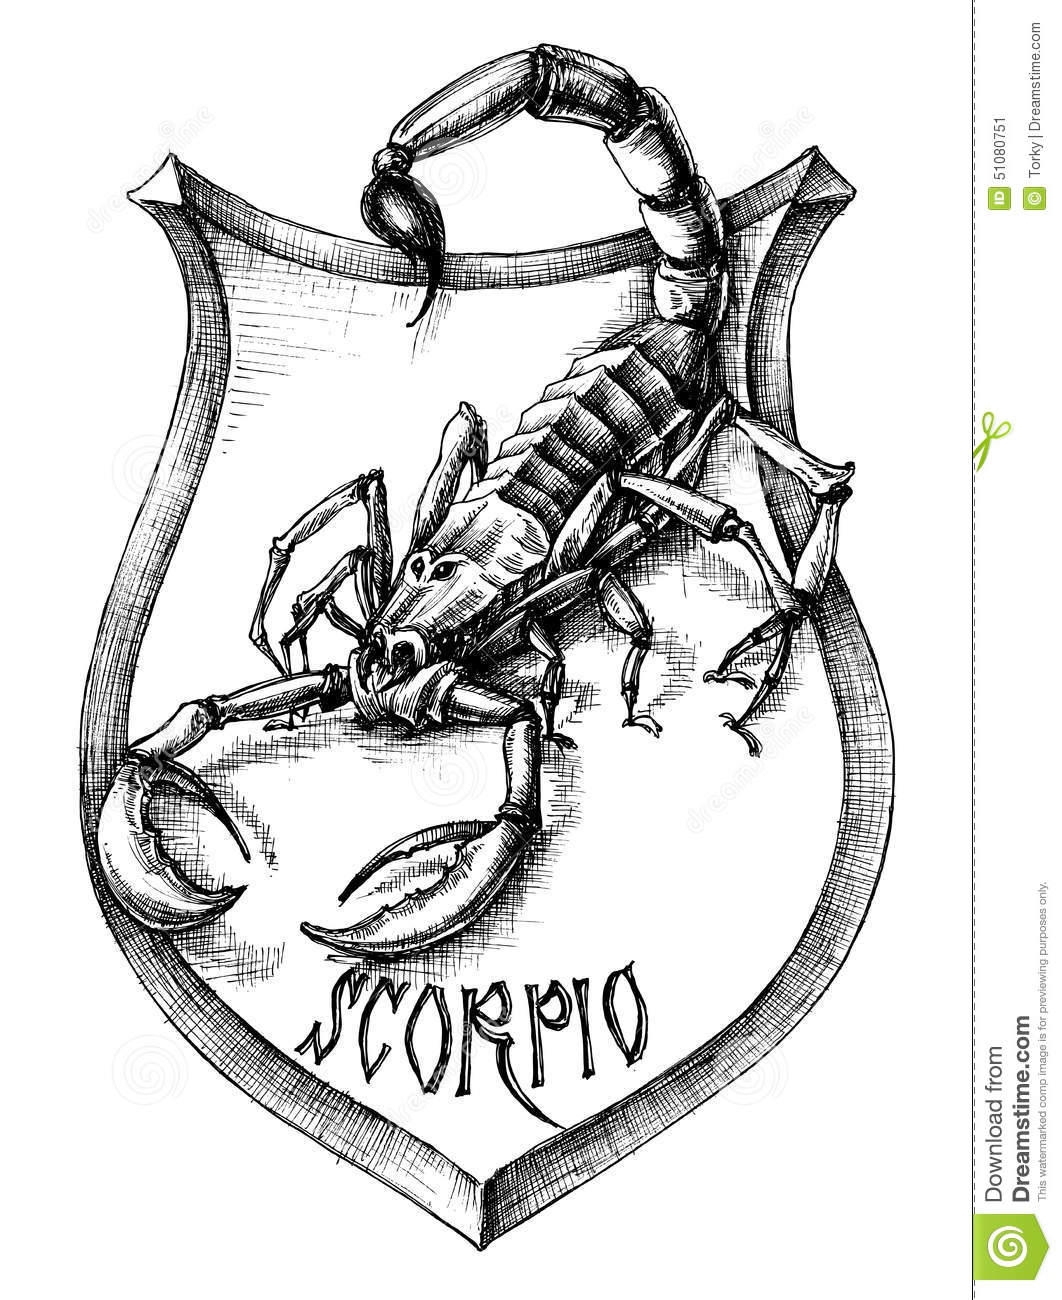 16 further pass Symbol besides 36590 Peter Pan Flying Shadows Set Of Wall Clings Ships Free as well  likewise Stock Illustration Scorpio Drawing Scorpion Heraldry Zodiacal Sign Image51080751. on map of old usa